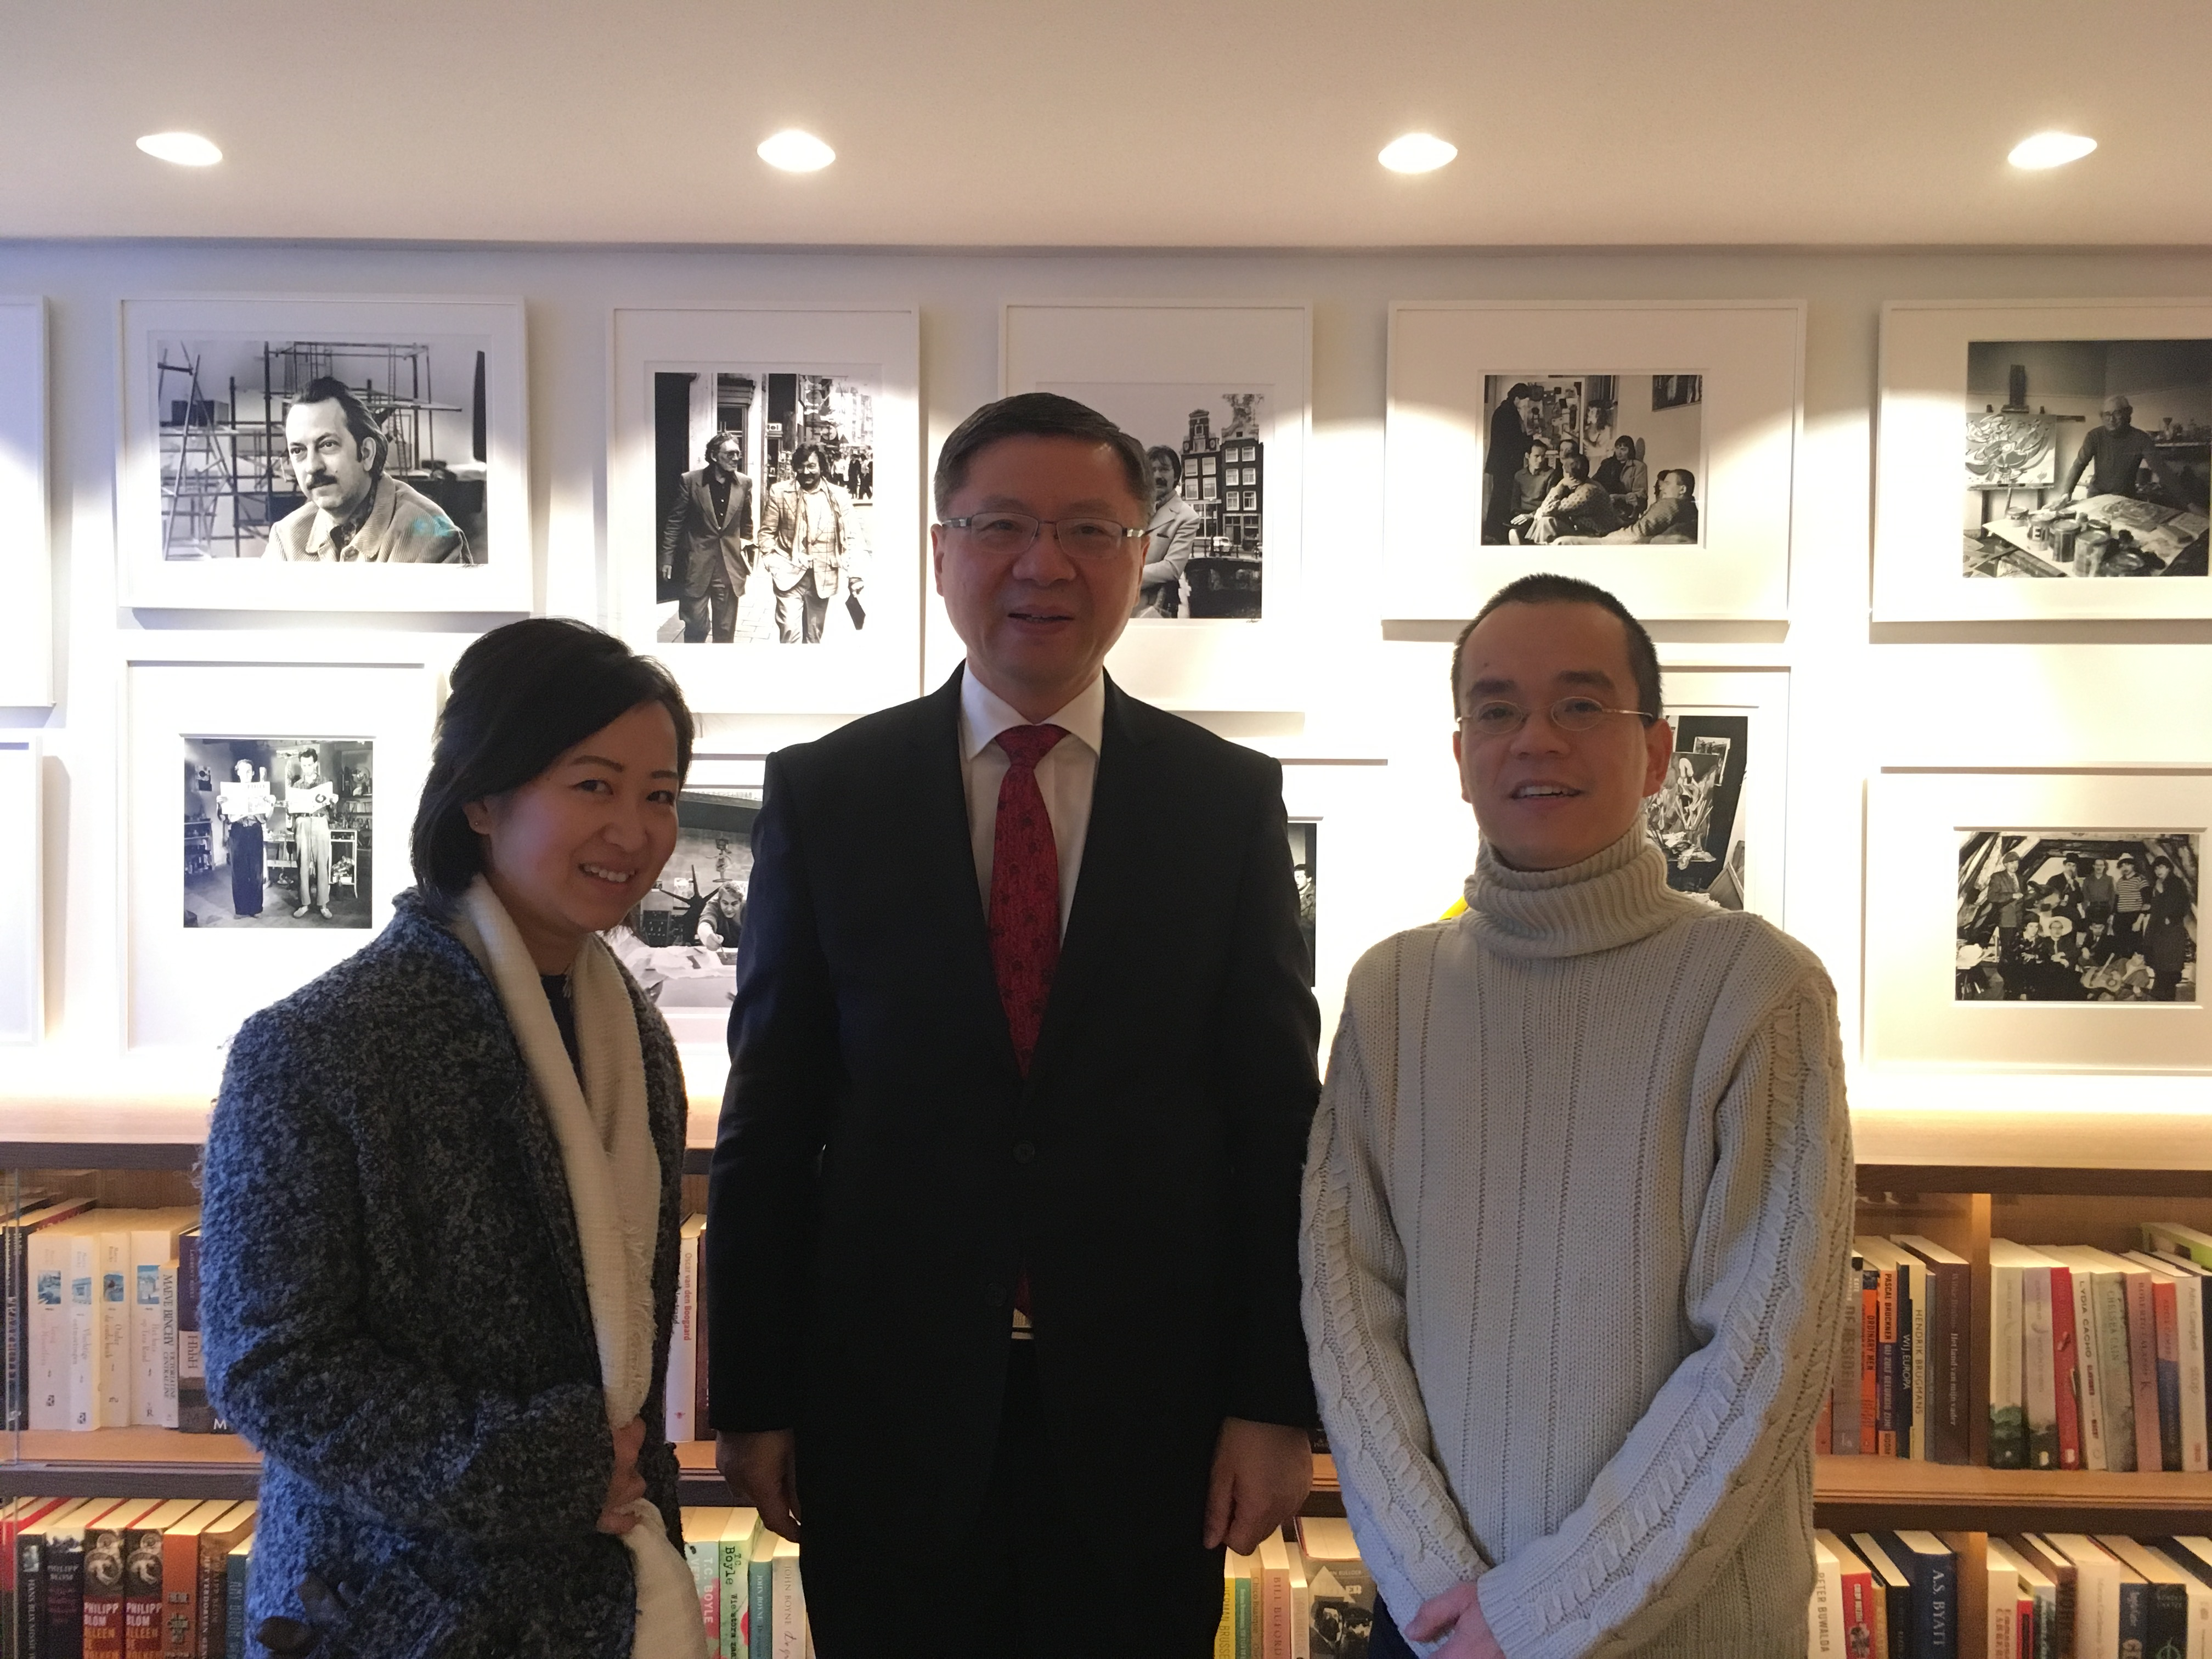 Professor Zhang Weiwei (middle), Miki Dai (photos, left) and Hong Tong Wu (text and interview, right)